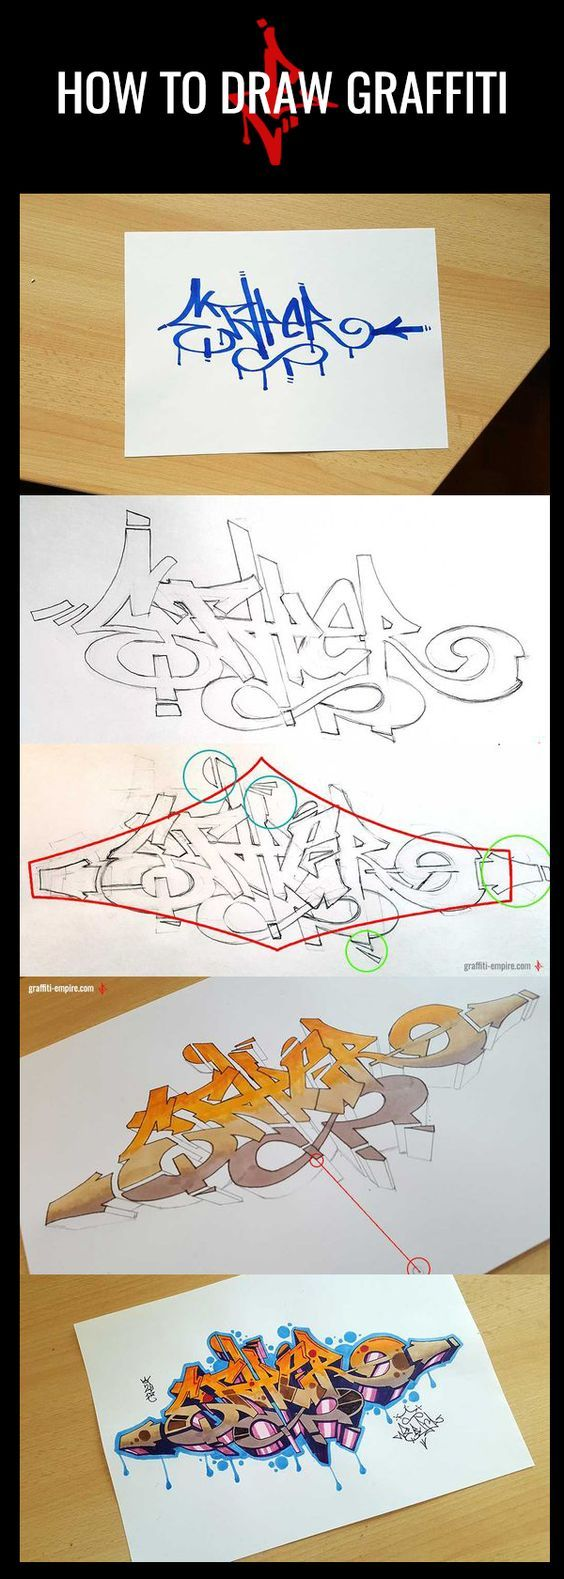 Tutorial: How to draw Graffiti - every step of creating a Graffiti with pictures and descriptions. #graffiti #drawing